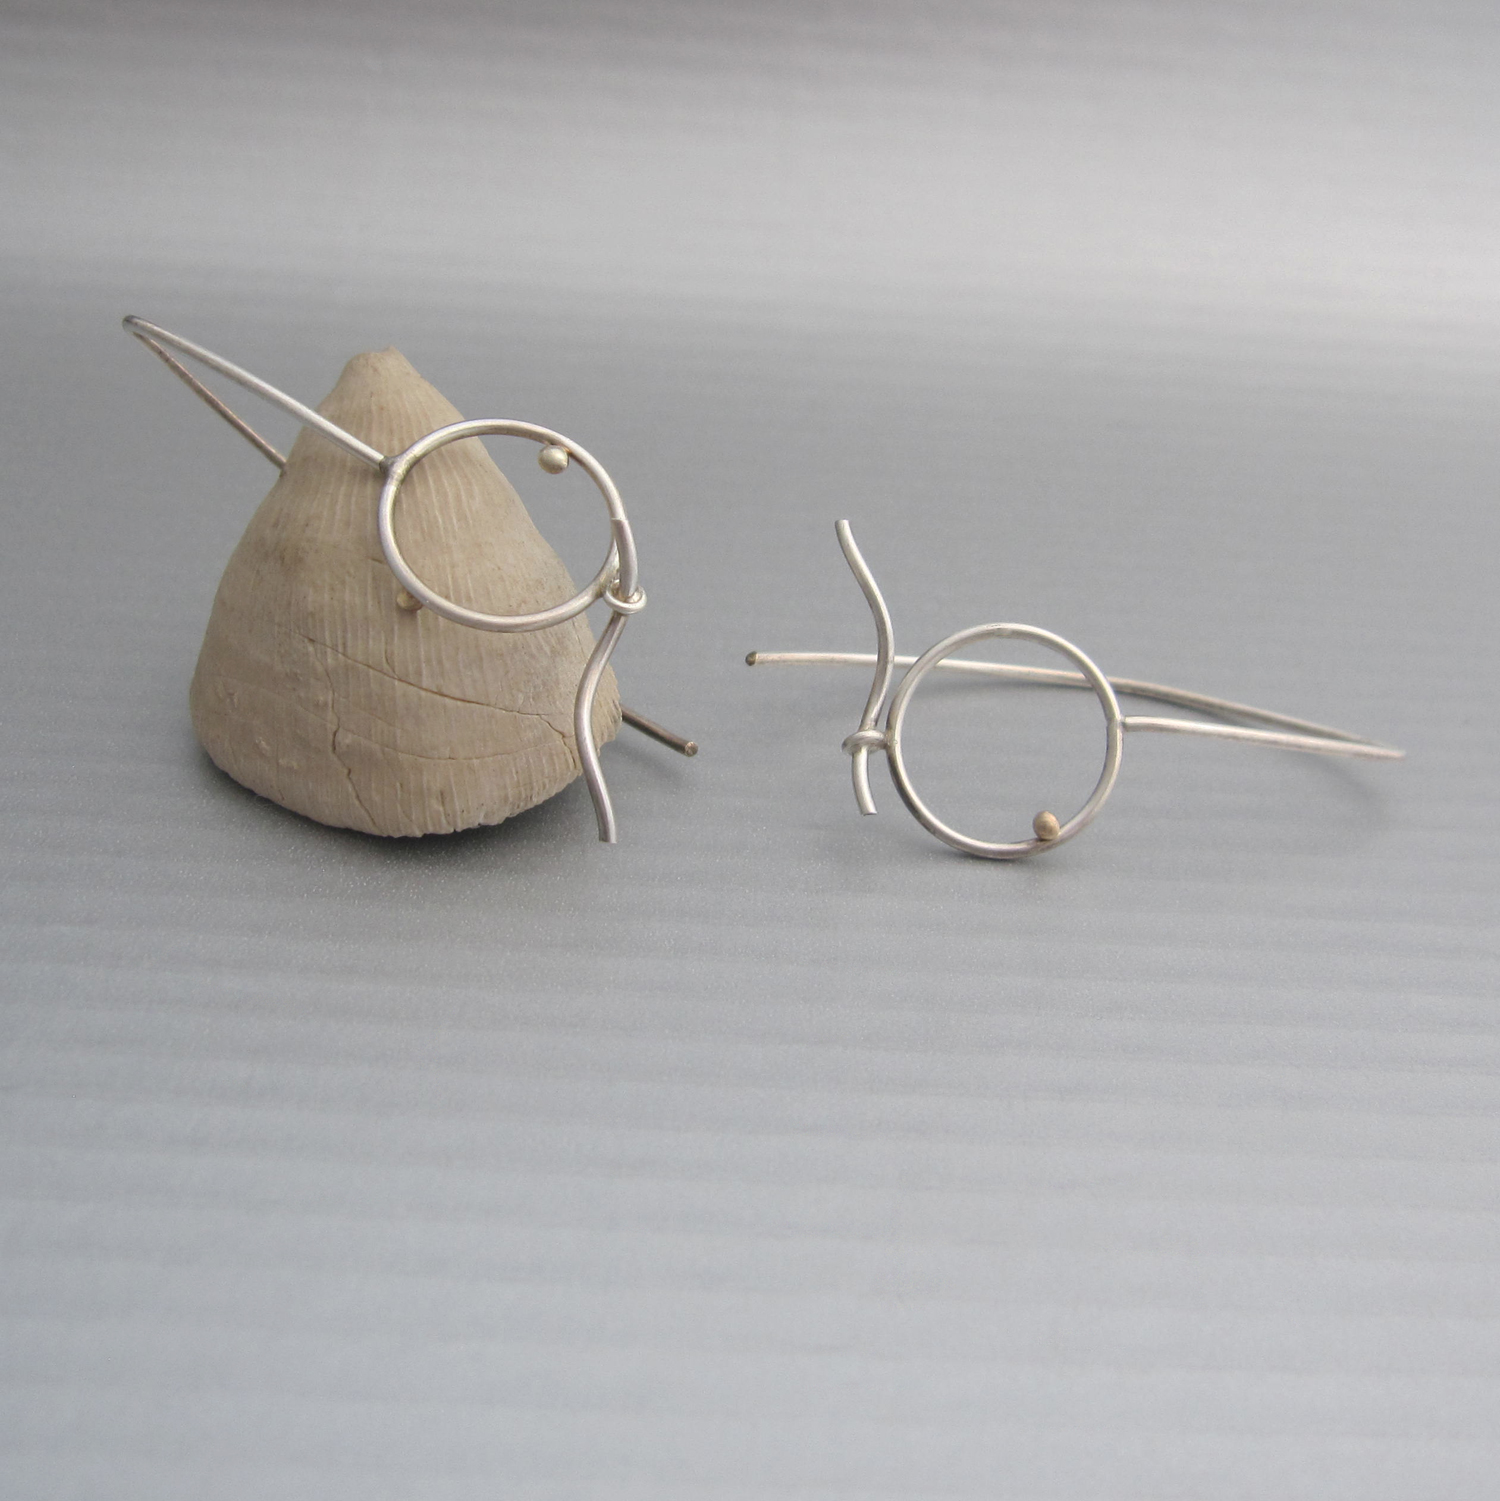 Onda earrings, one of the pieces featured in I AM THE LAB.